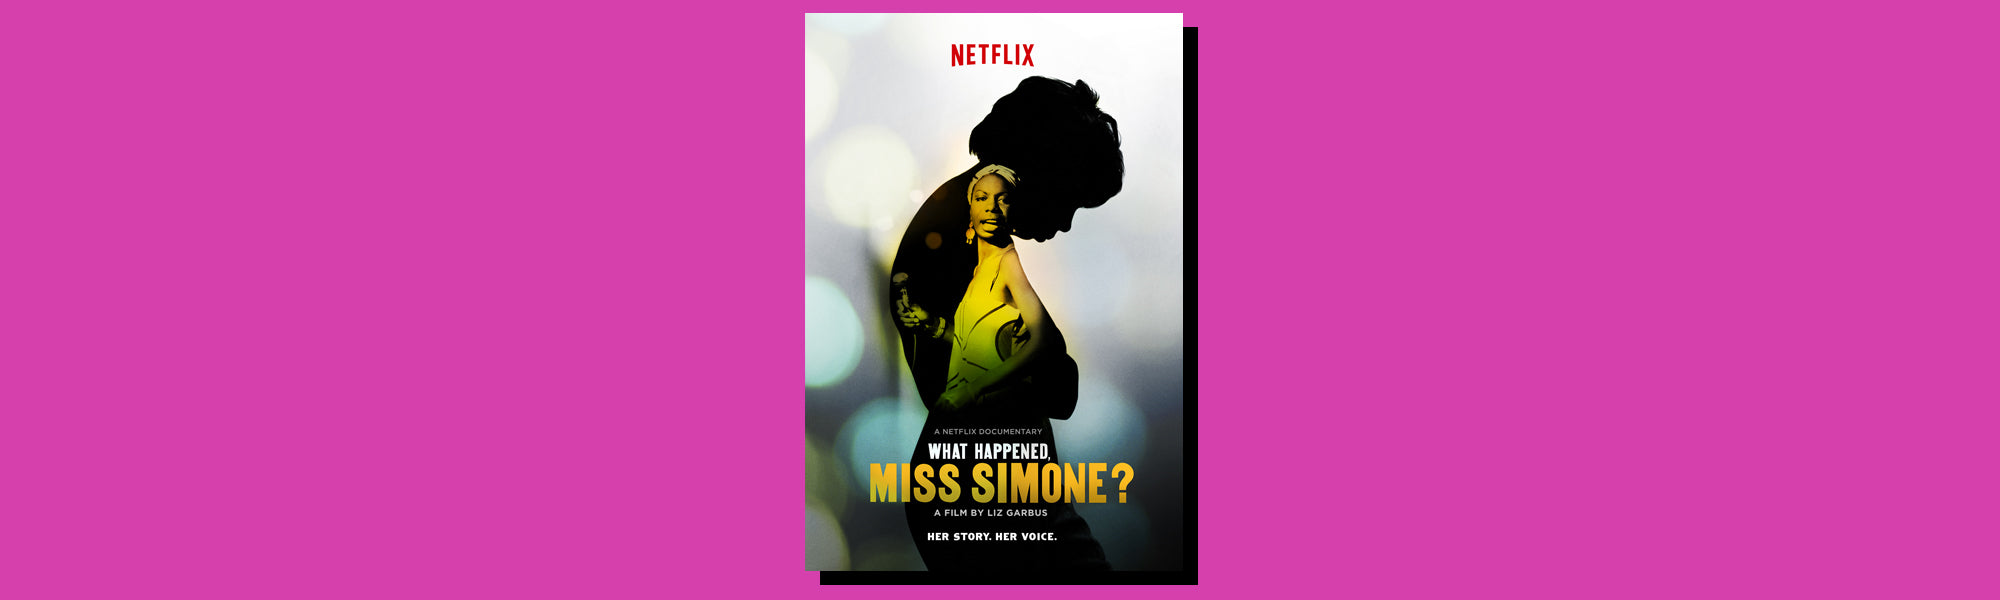 west carolina must watch feminist movies and shows on netflix blog post image 8